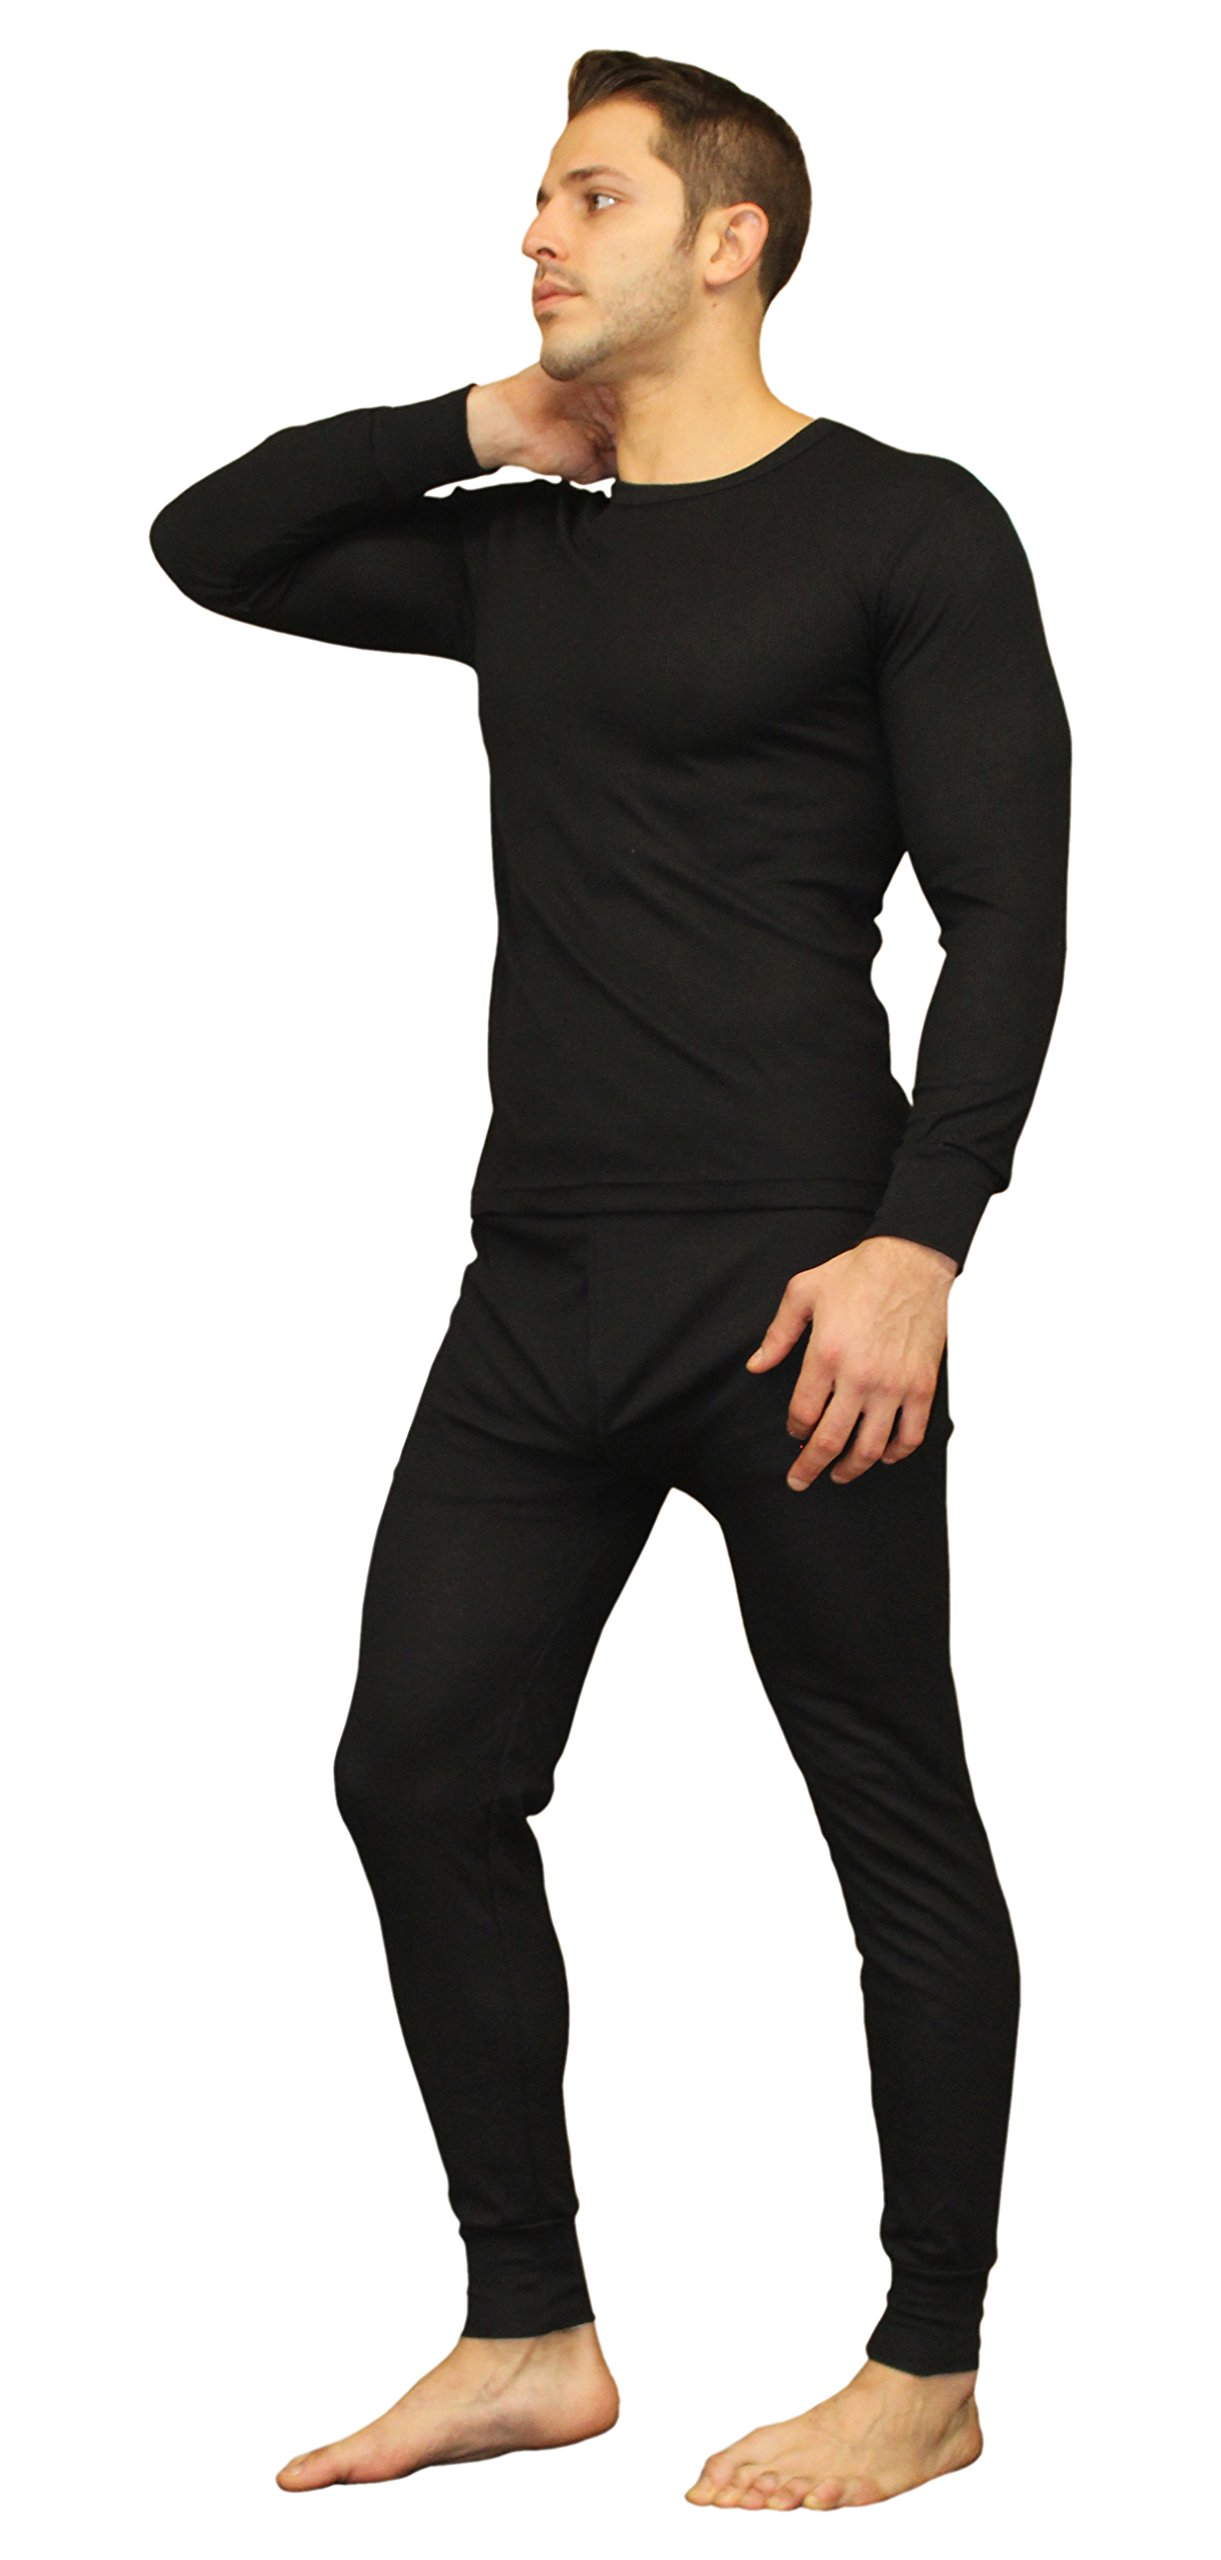 Shop today for Men's Thermal Underwear like Waterproof Men's Thermal Underwear and Synthetic Men's Thermal Underwear at Macy's.